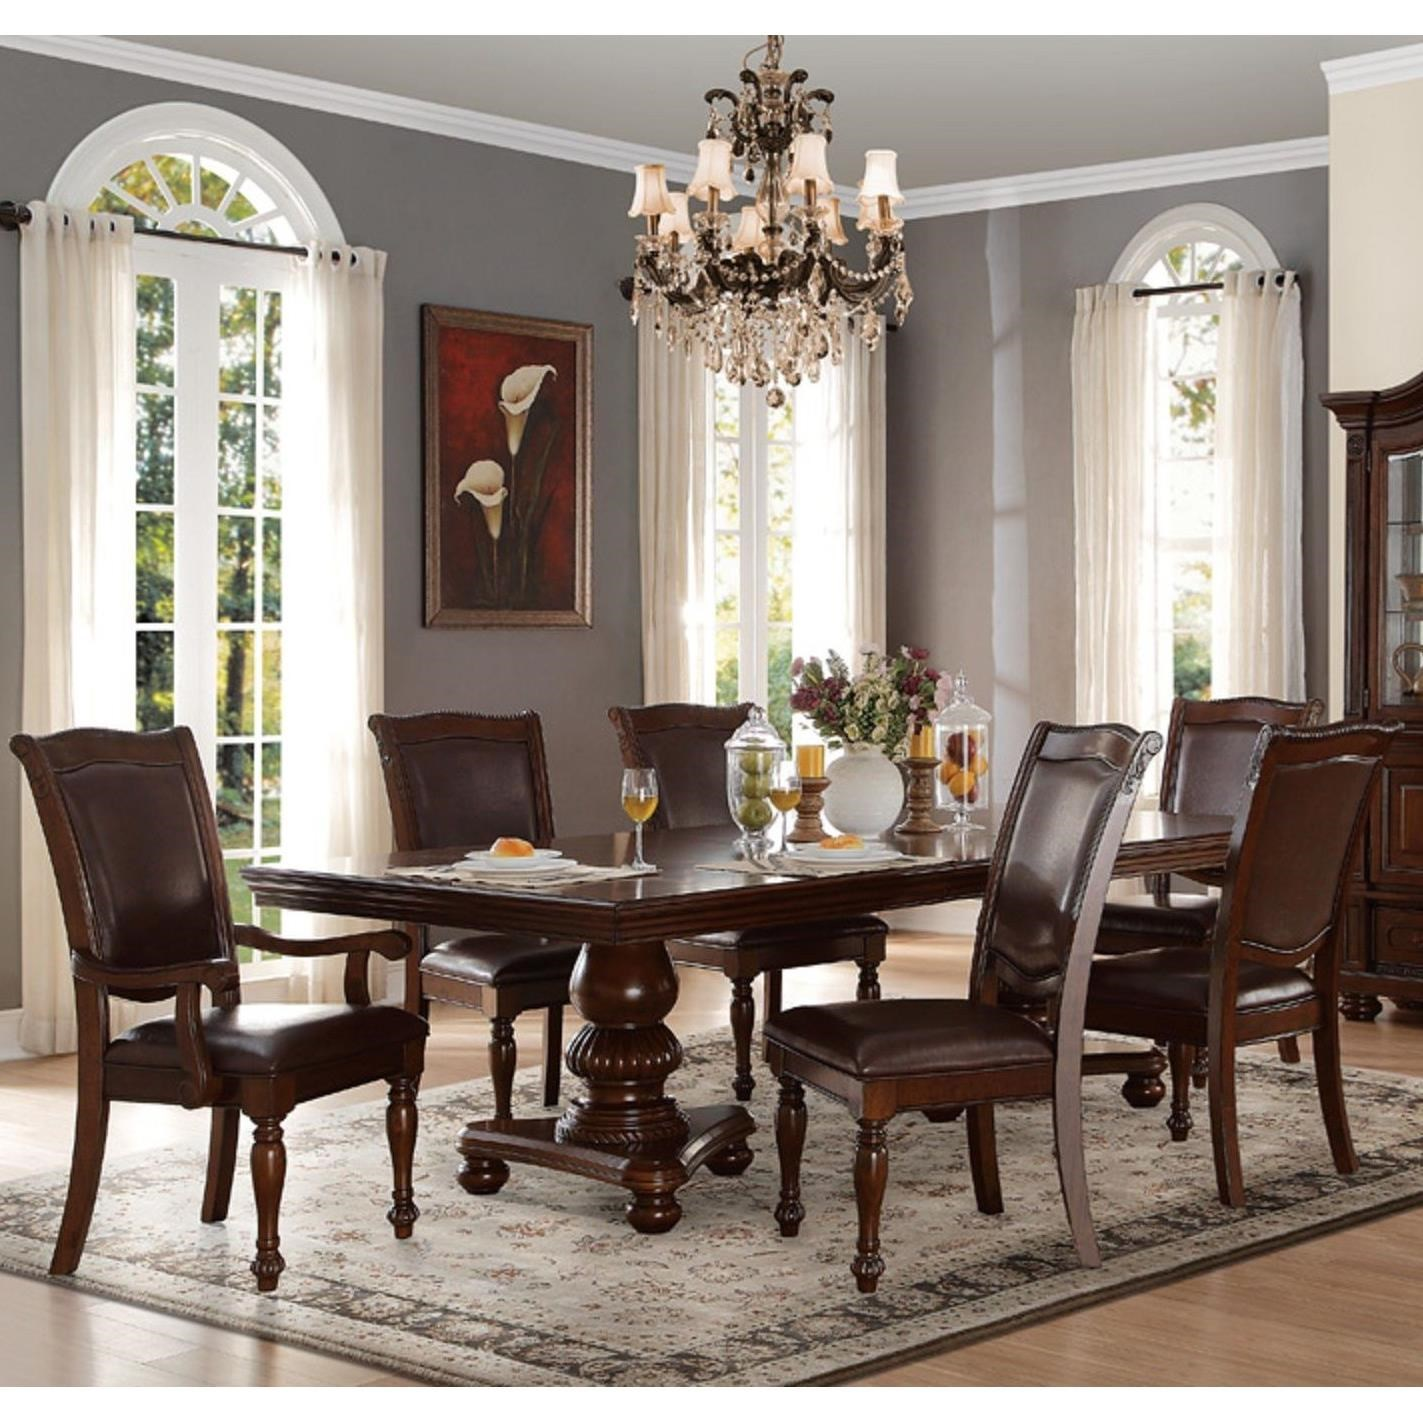 Lordsburg Table and Chair Set by Homelegance at Darvin Furniture